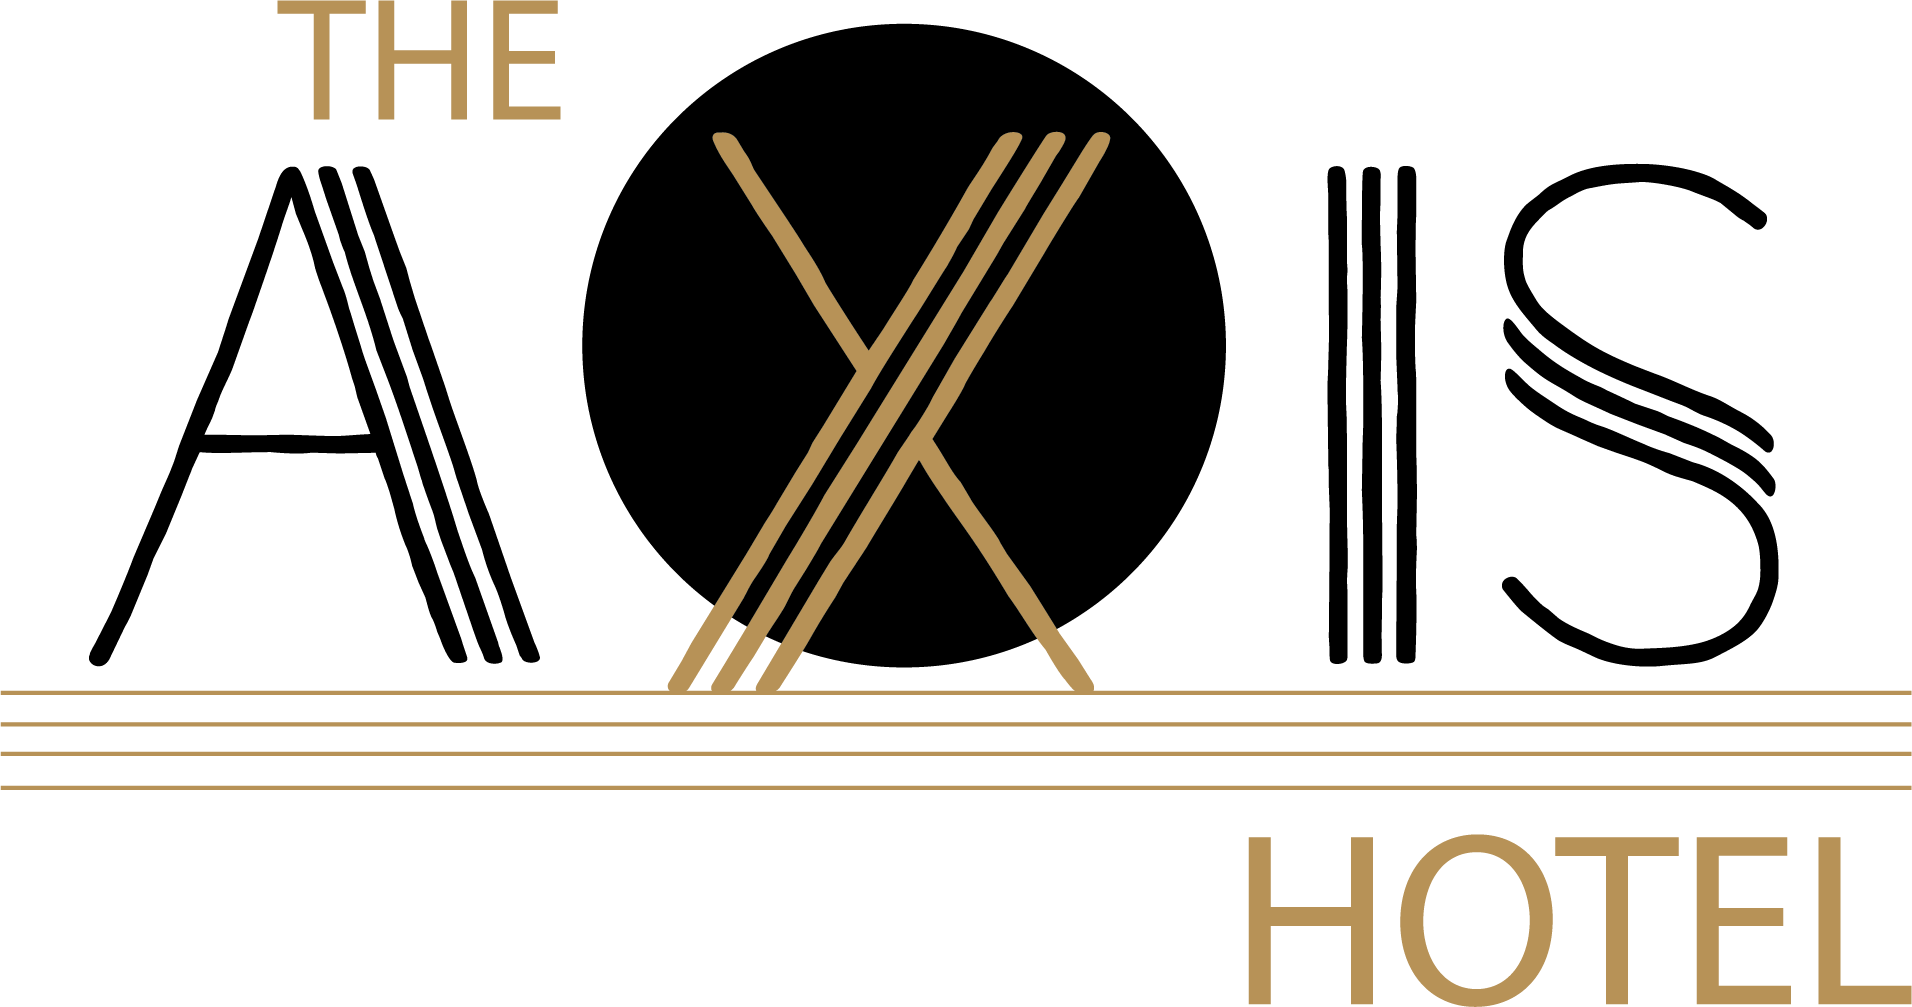 The Axis Hotel logo